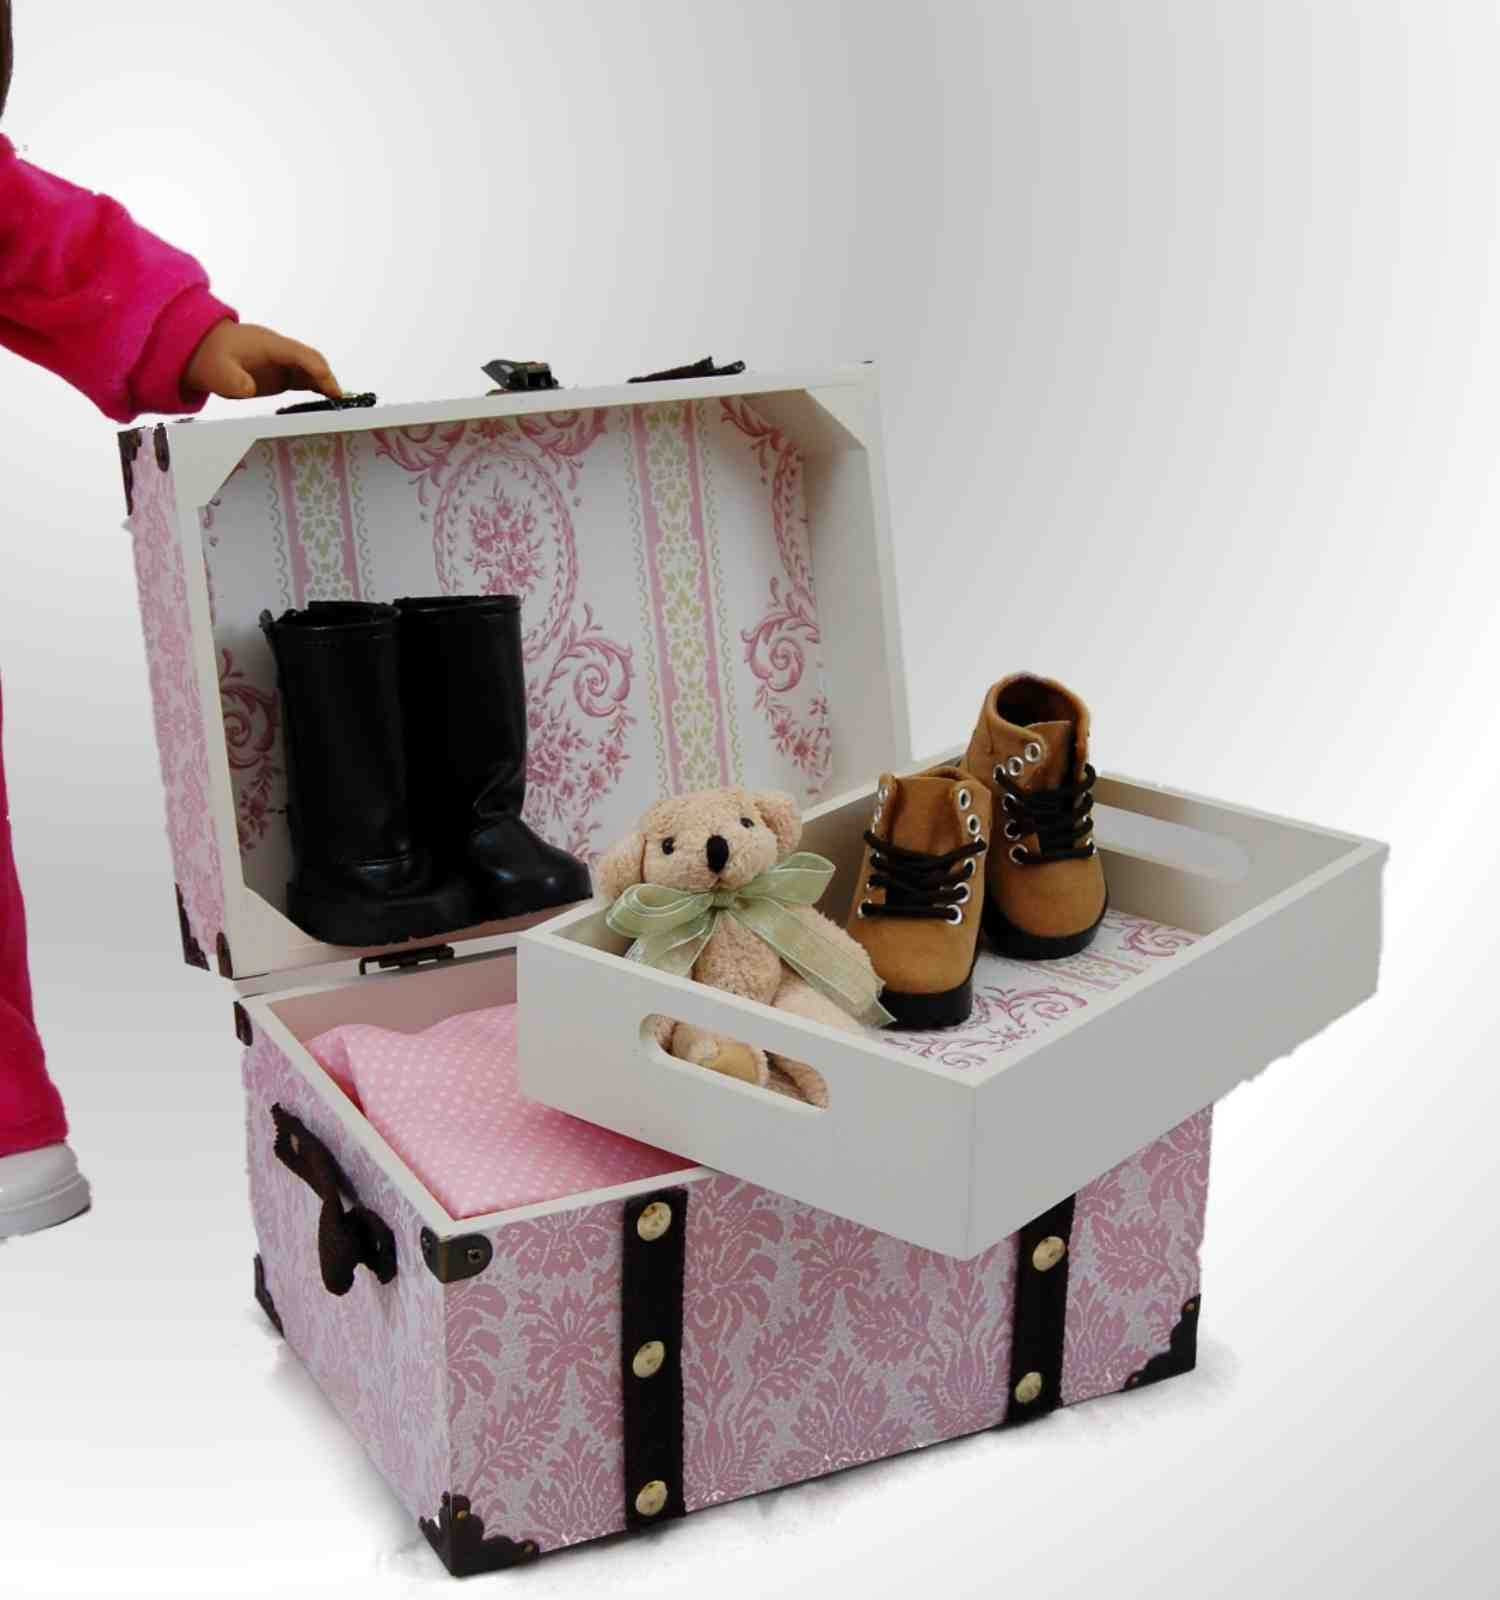 american girl doll chairs neck support for office chair india steamer trunk accessories